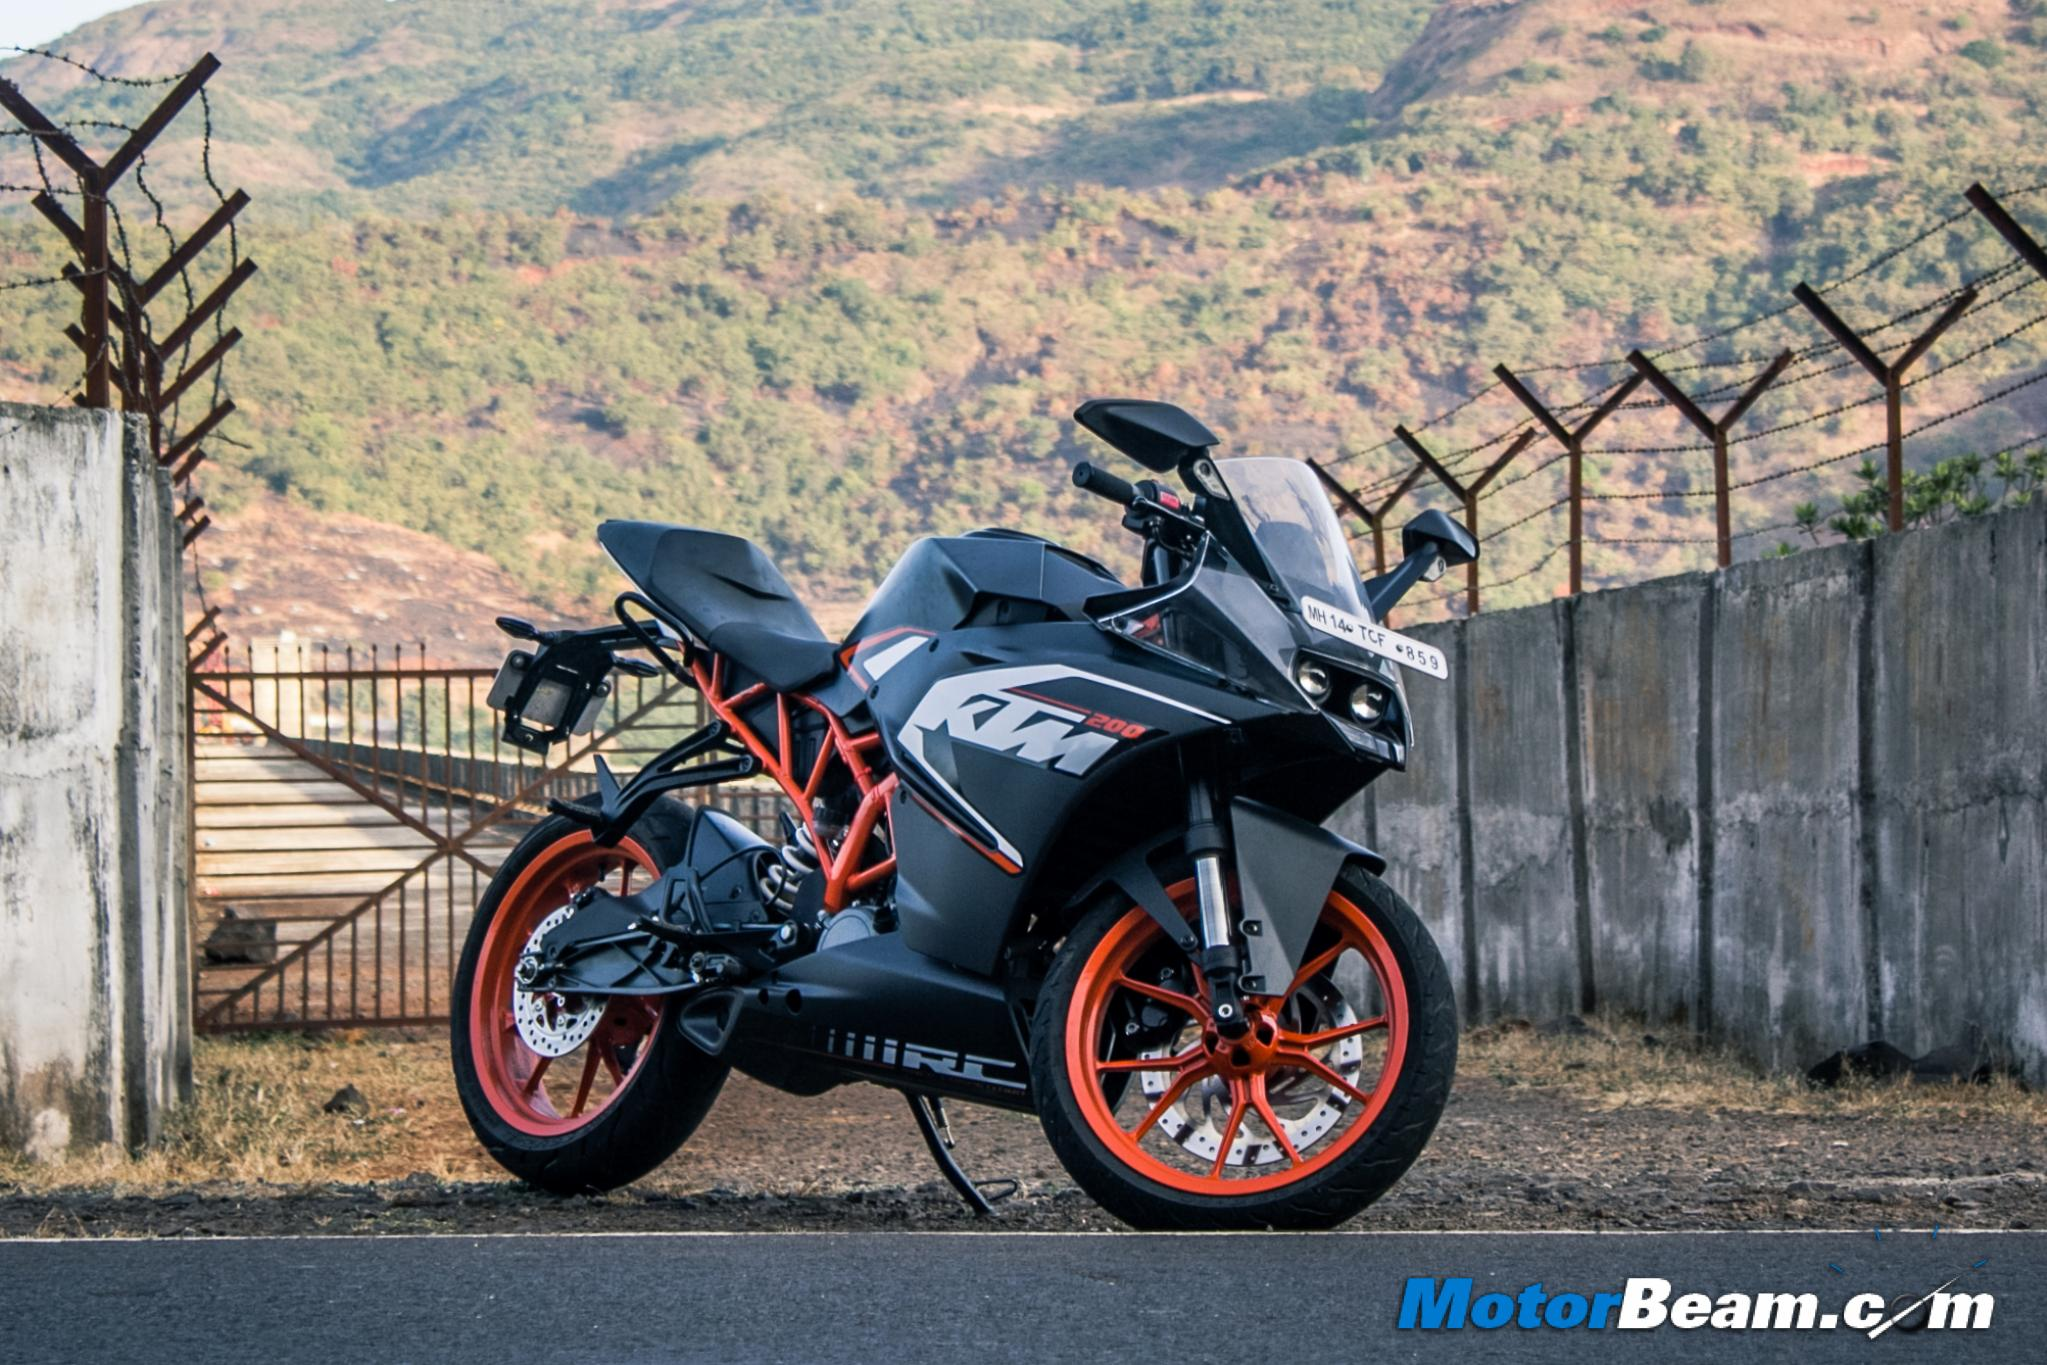 Bajaj pulsar rs200 vs ktm rc200 vs honda cbr250r comparison youtube - Ktm Rc 200 Test Ride Review